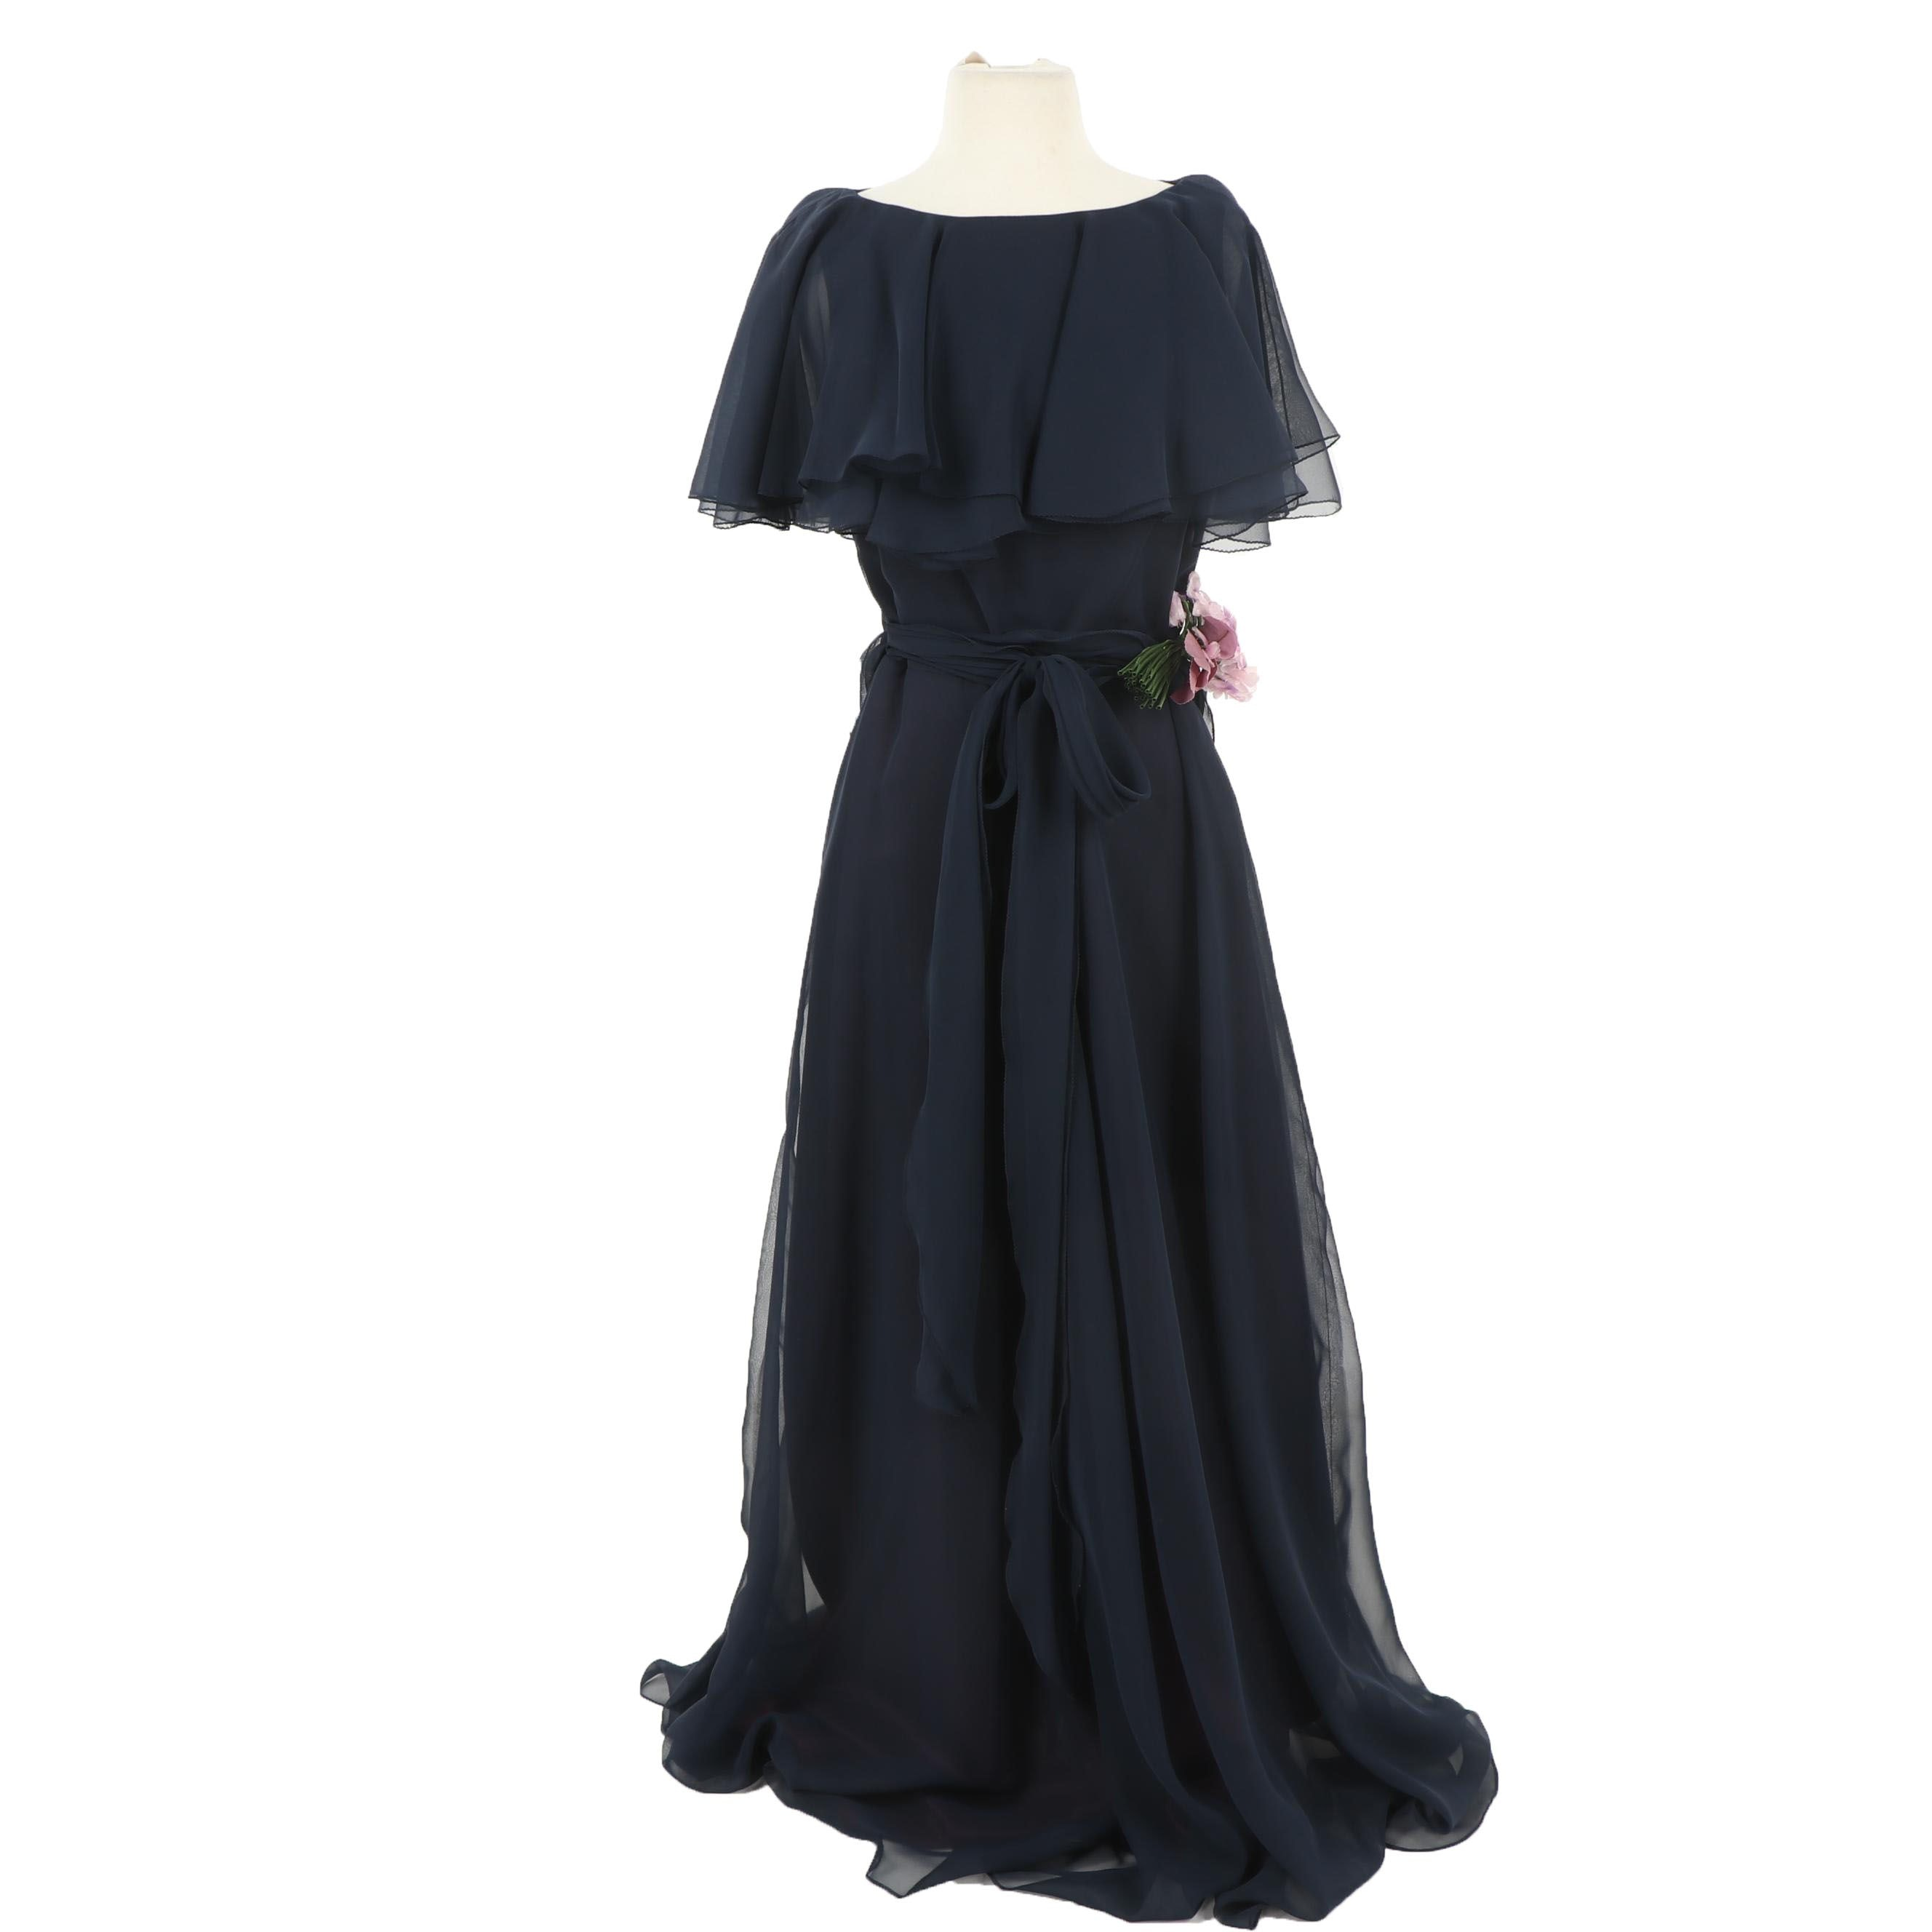 Marita by Anthony Muto Navy Chiffon Evening Gown, Vintage